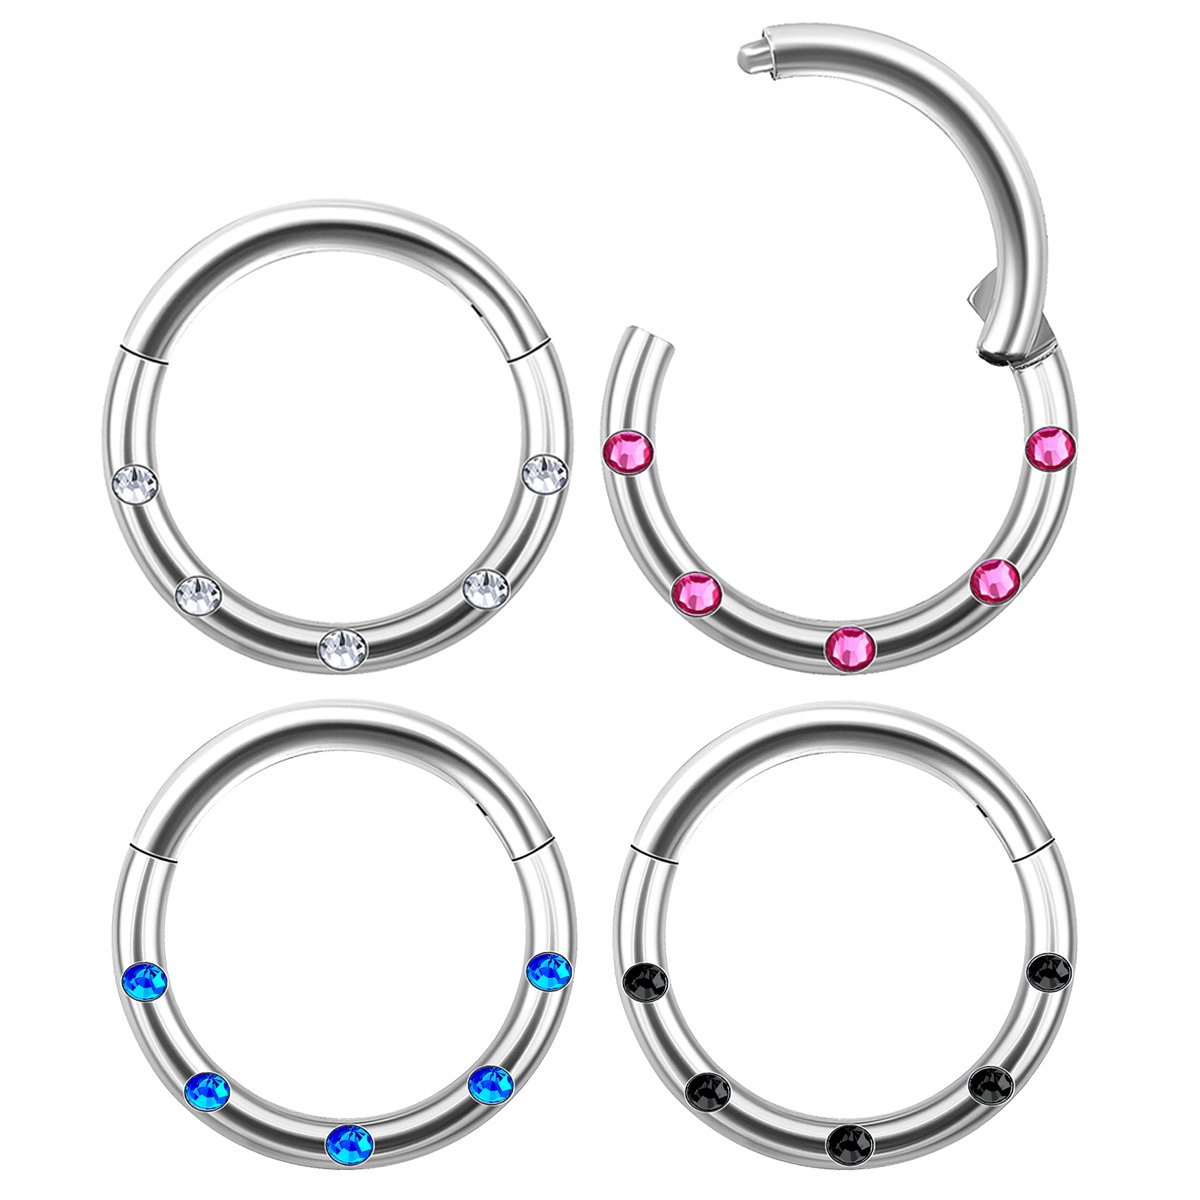 4Pcs Steel 16g 5//16 8mm septum clicker Piercing Jewelry Tragus Nose Cartilage Clear Rose Sapphire Black Jet Crystal M1119